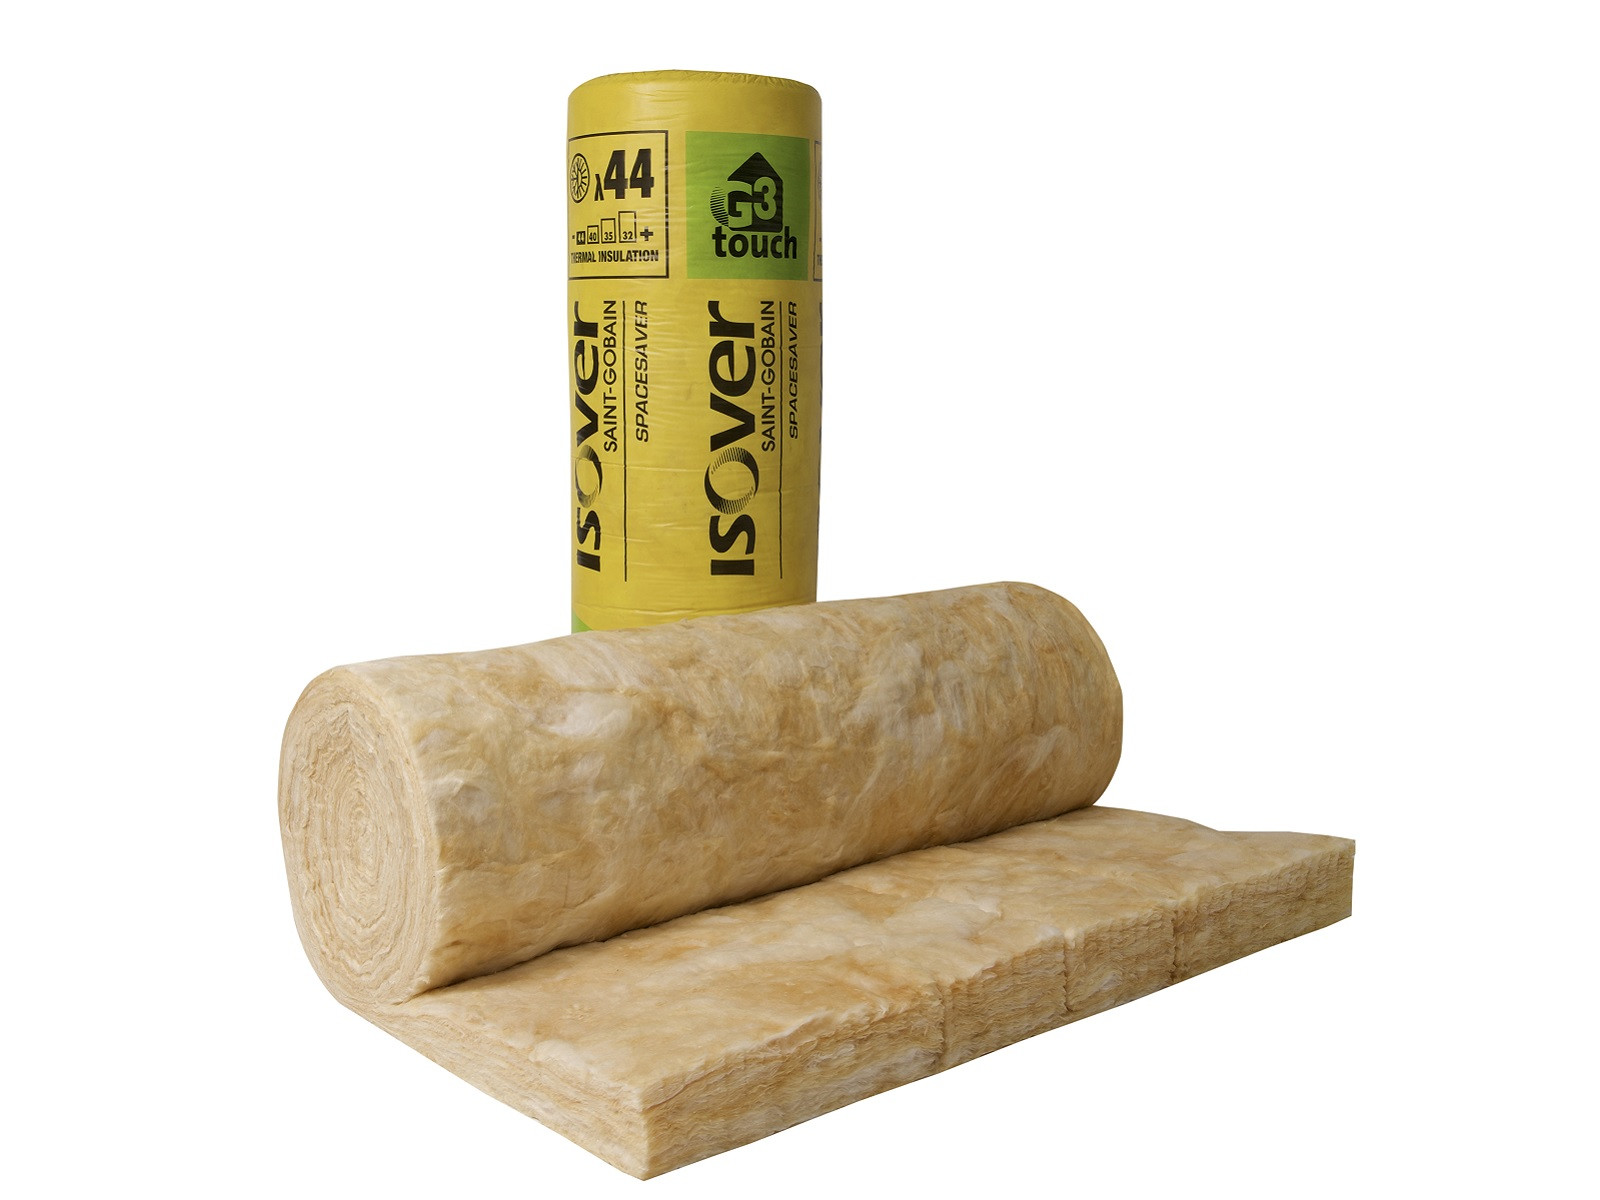 Spacesaver g3 touch mineral wool loft insulation 170mm 6 for 2 mineral wool insulation